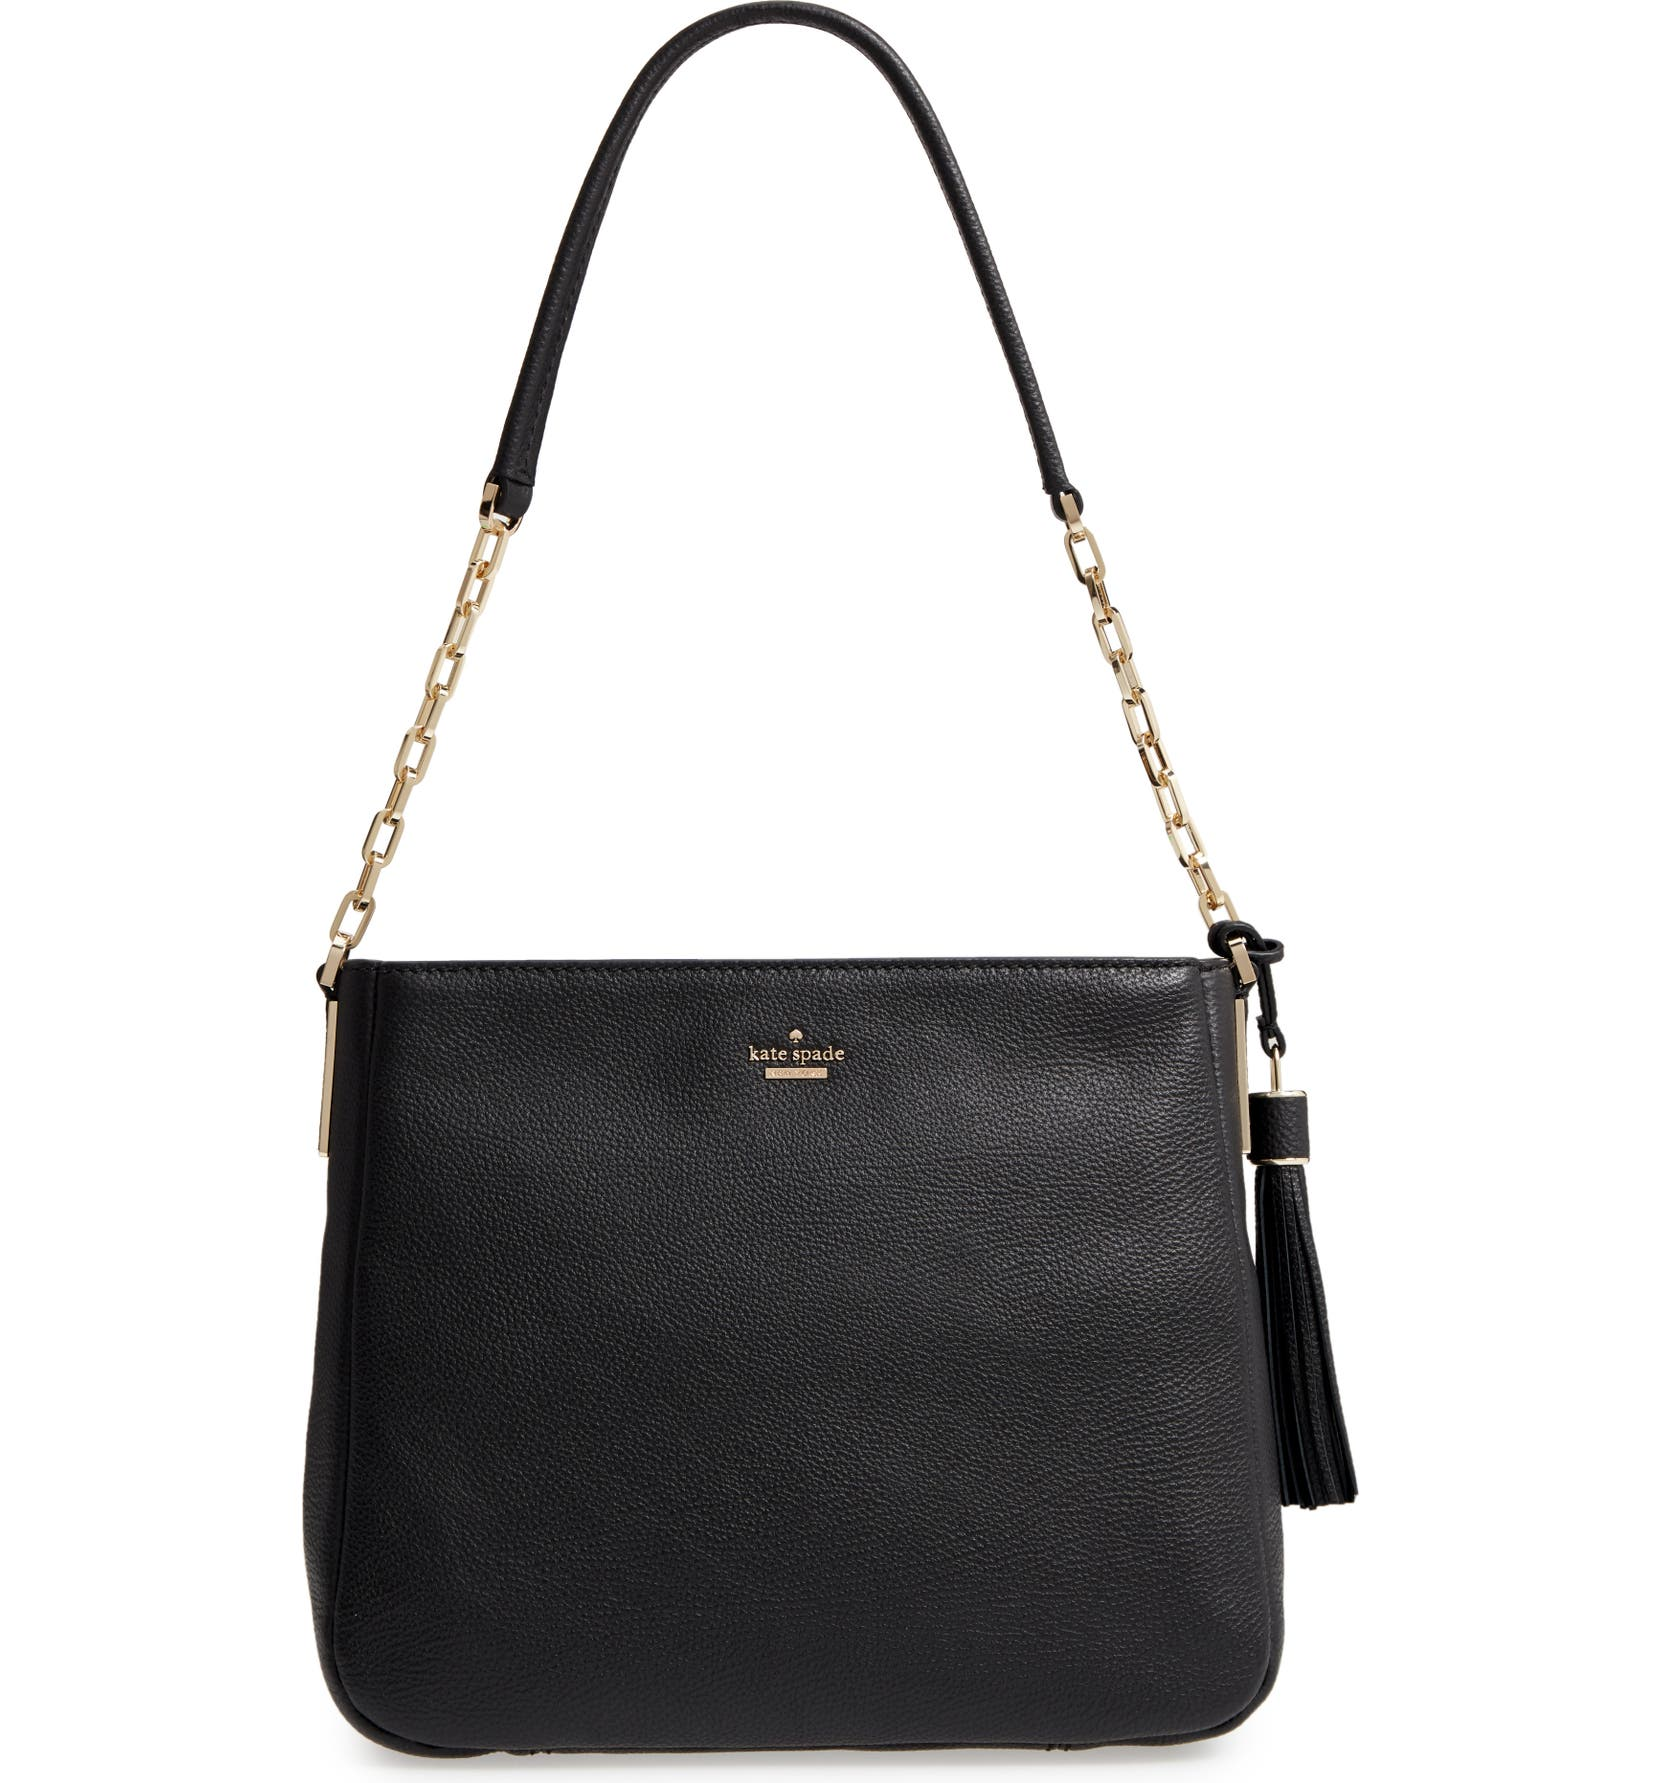 9c1a2b784cb9 kate spade new york kingston drive - shannon leather tote